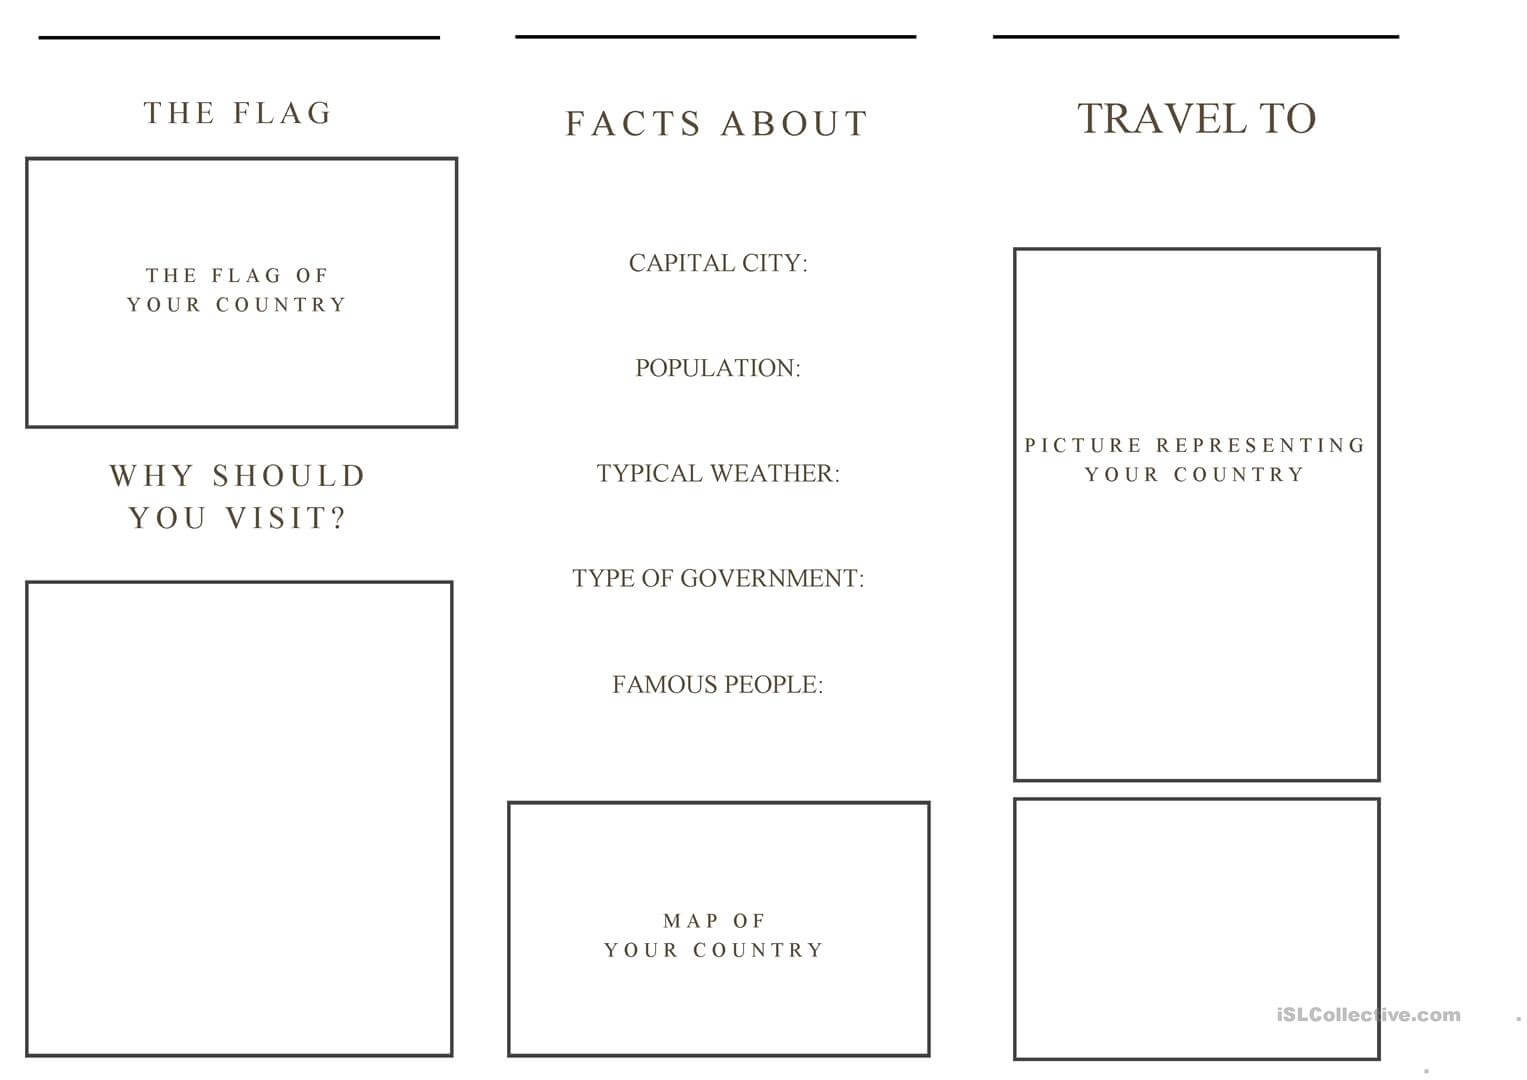 Travel Brochure Template And Example Brochure - English Esl For Country Brochure Template